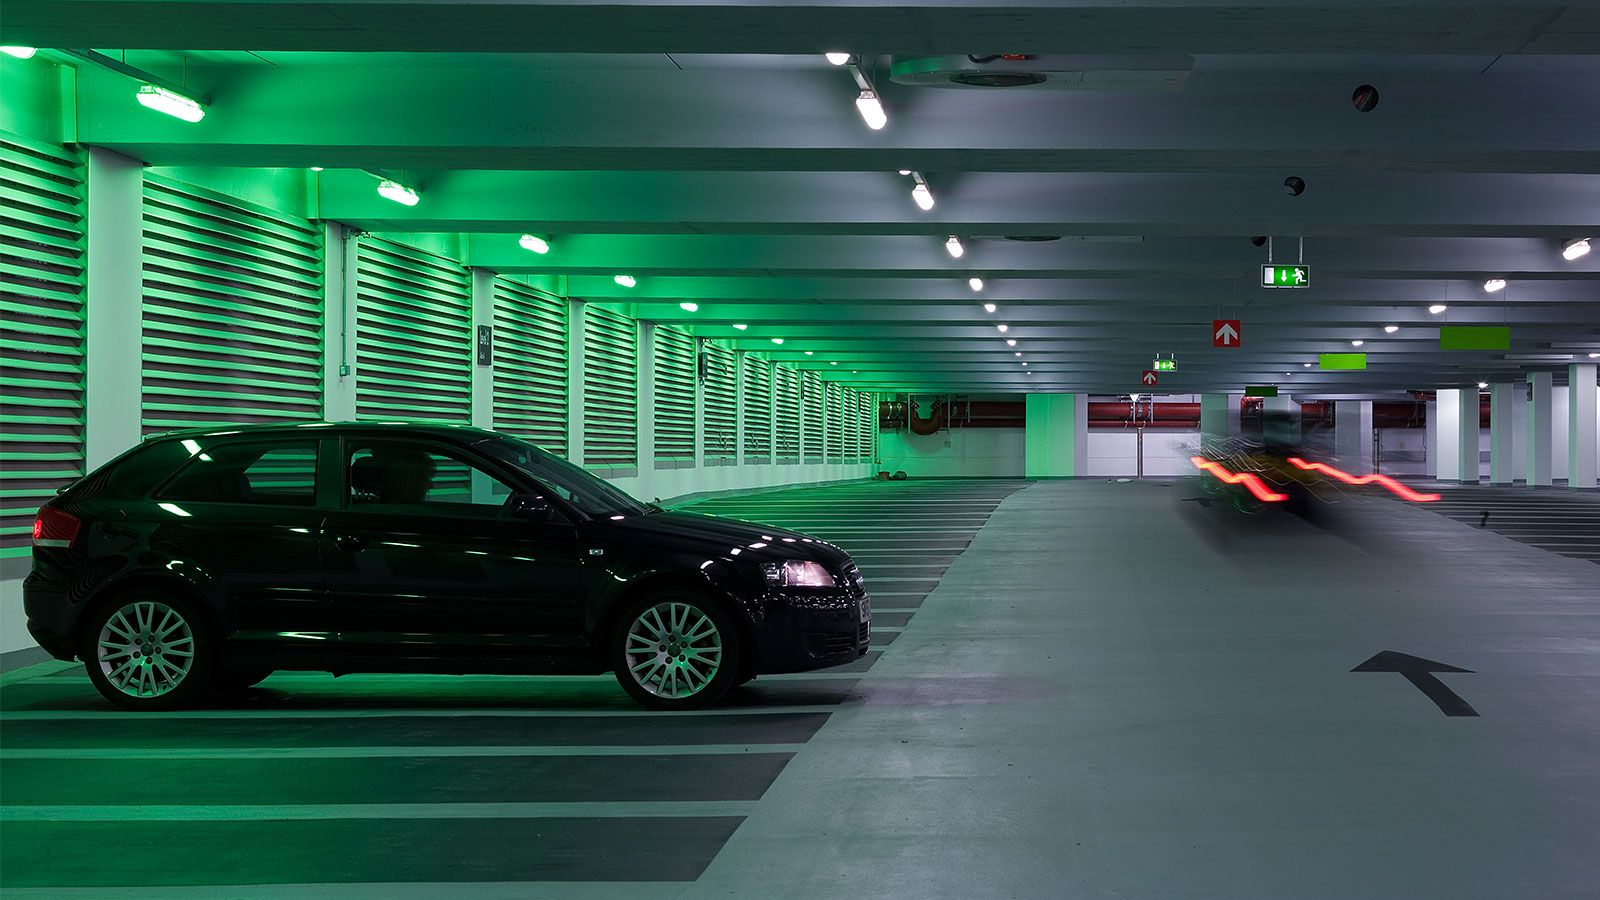 parking nexus provides you with information about available car